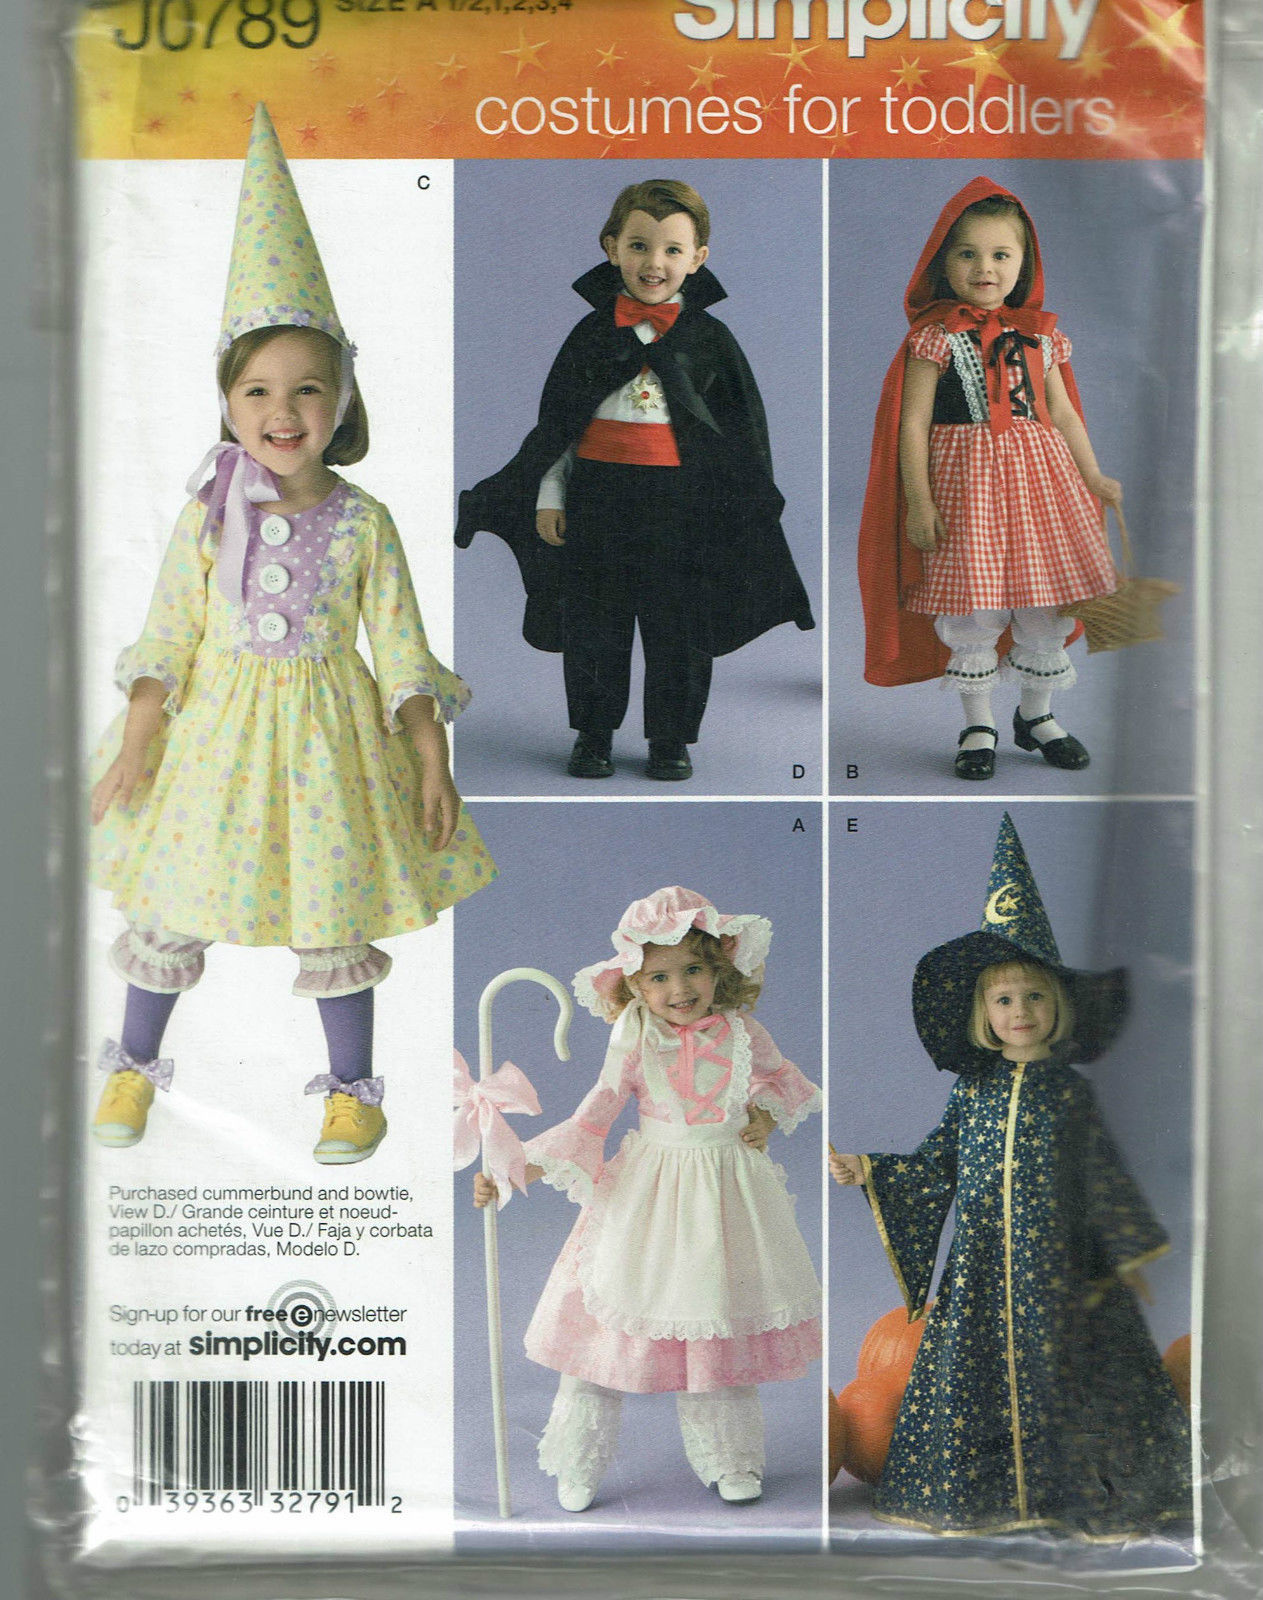 SIMPLICITY PATTERN 0789 VARIOUS TODDLER COSTUMES SIZE A (1/2 -4)